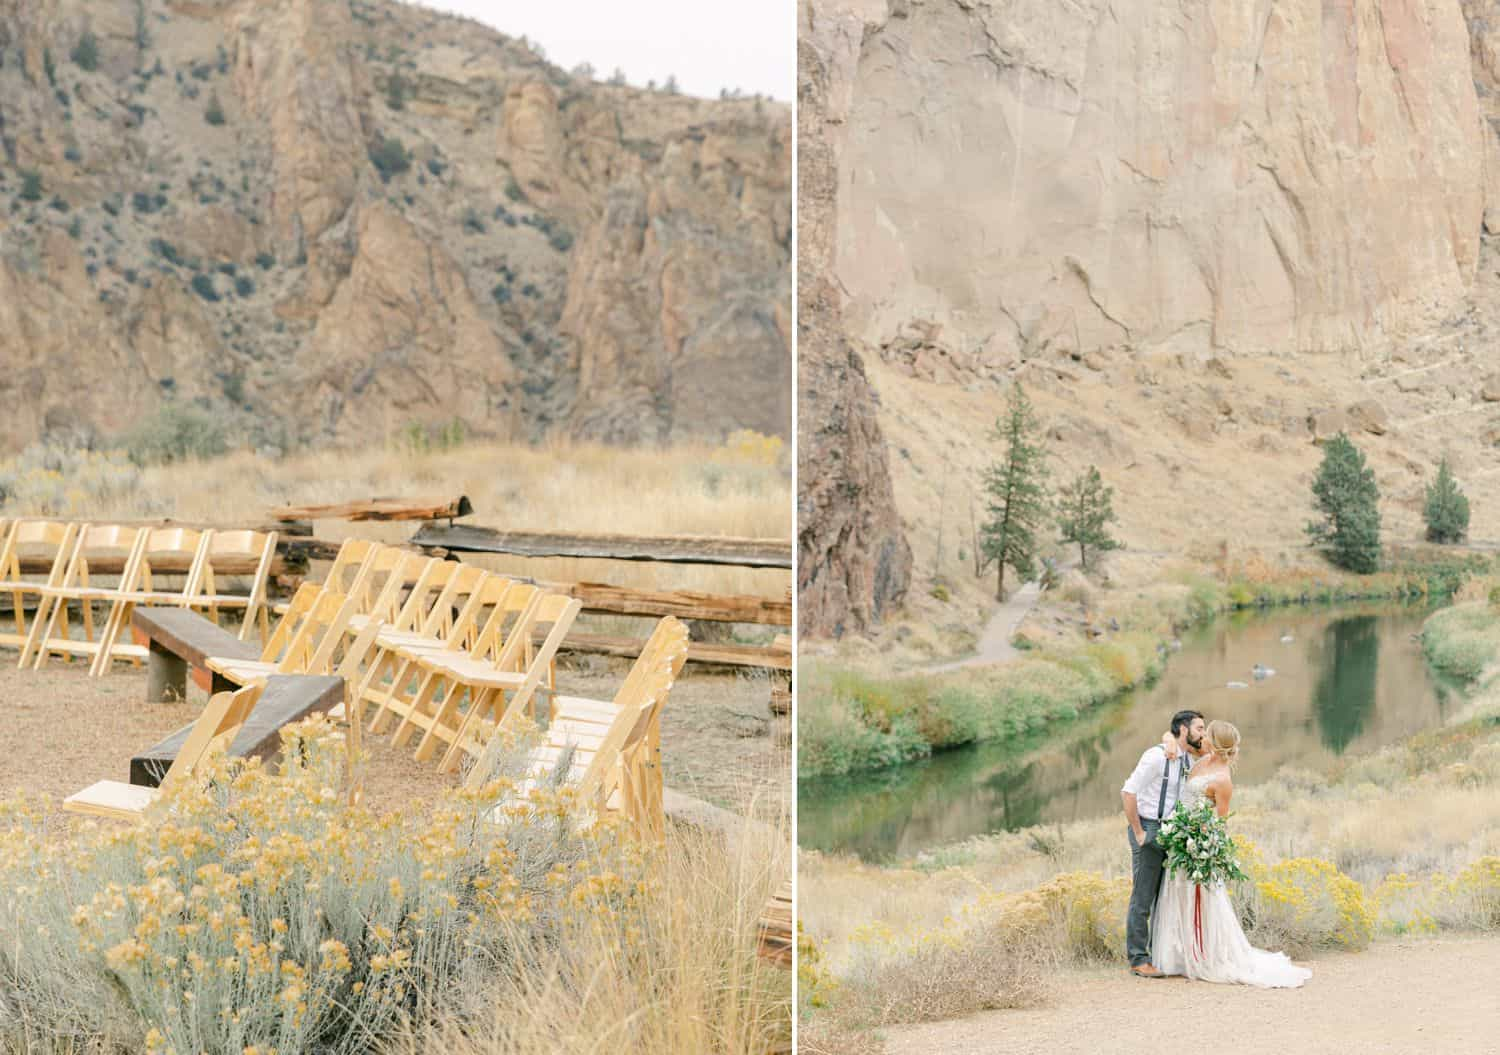 Empty rows of chairs overlook the elopement of a young couple getting married outside